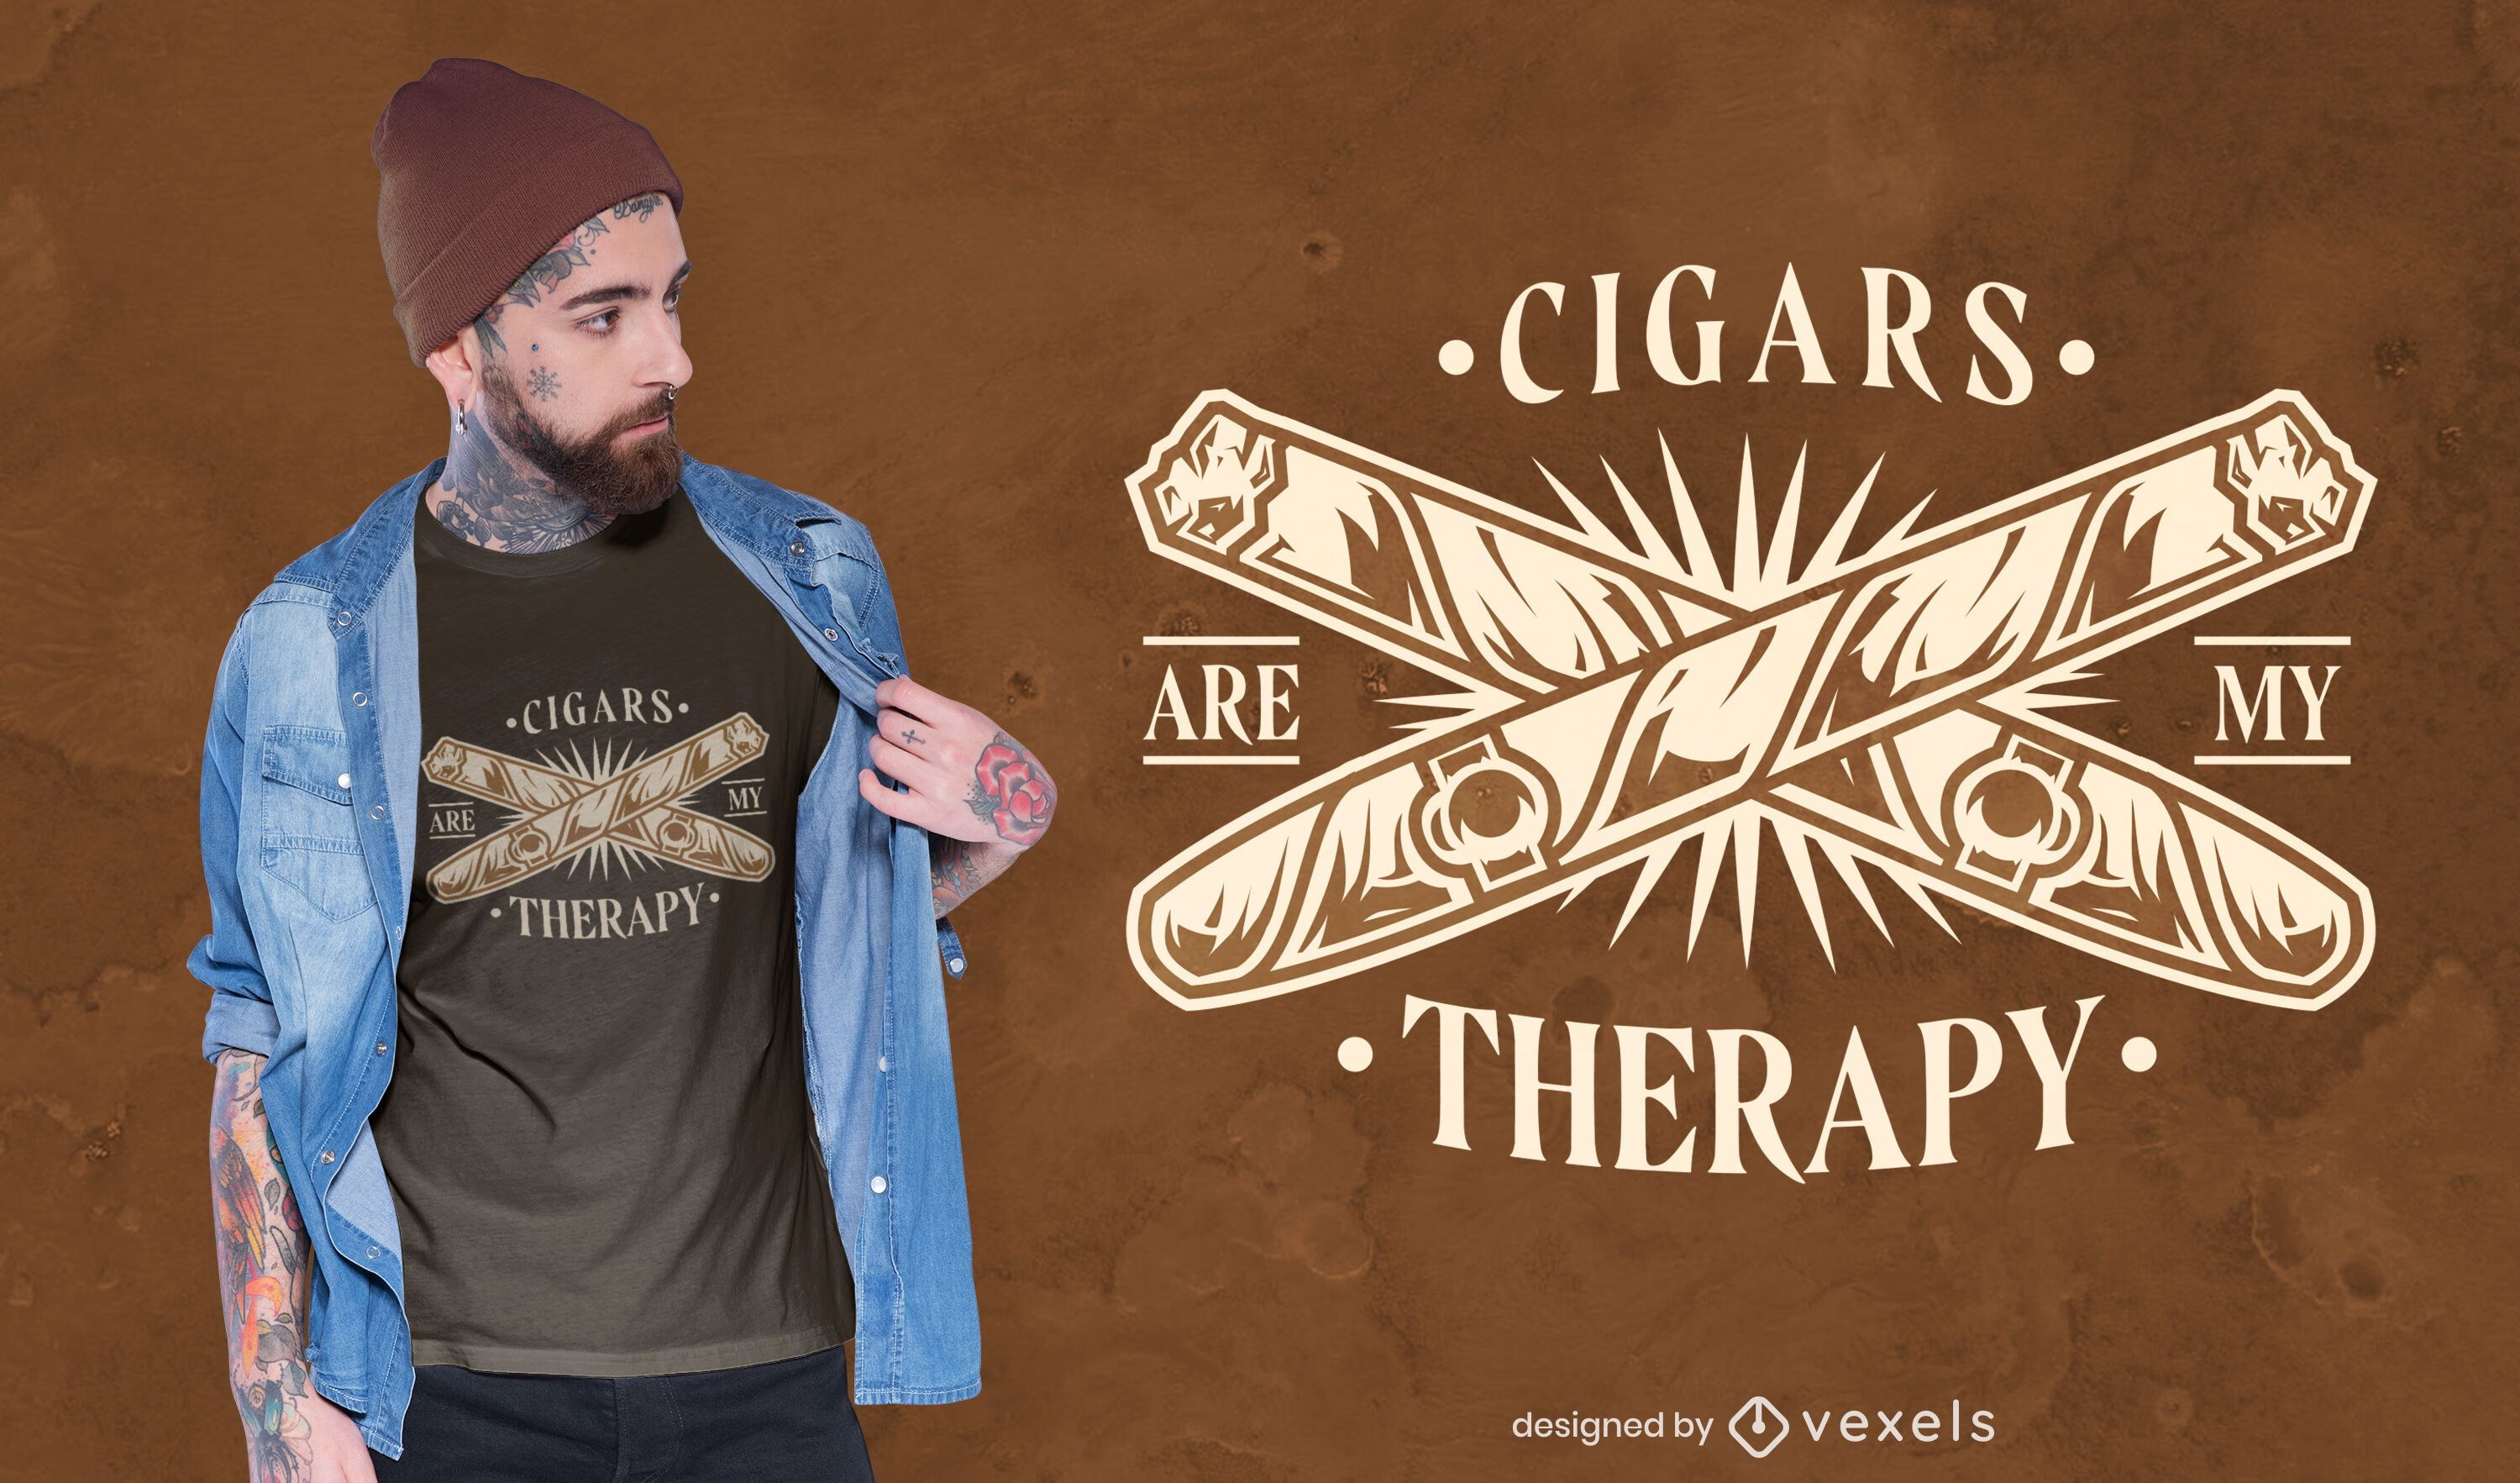 Cigar therapy quote t-shirt design